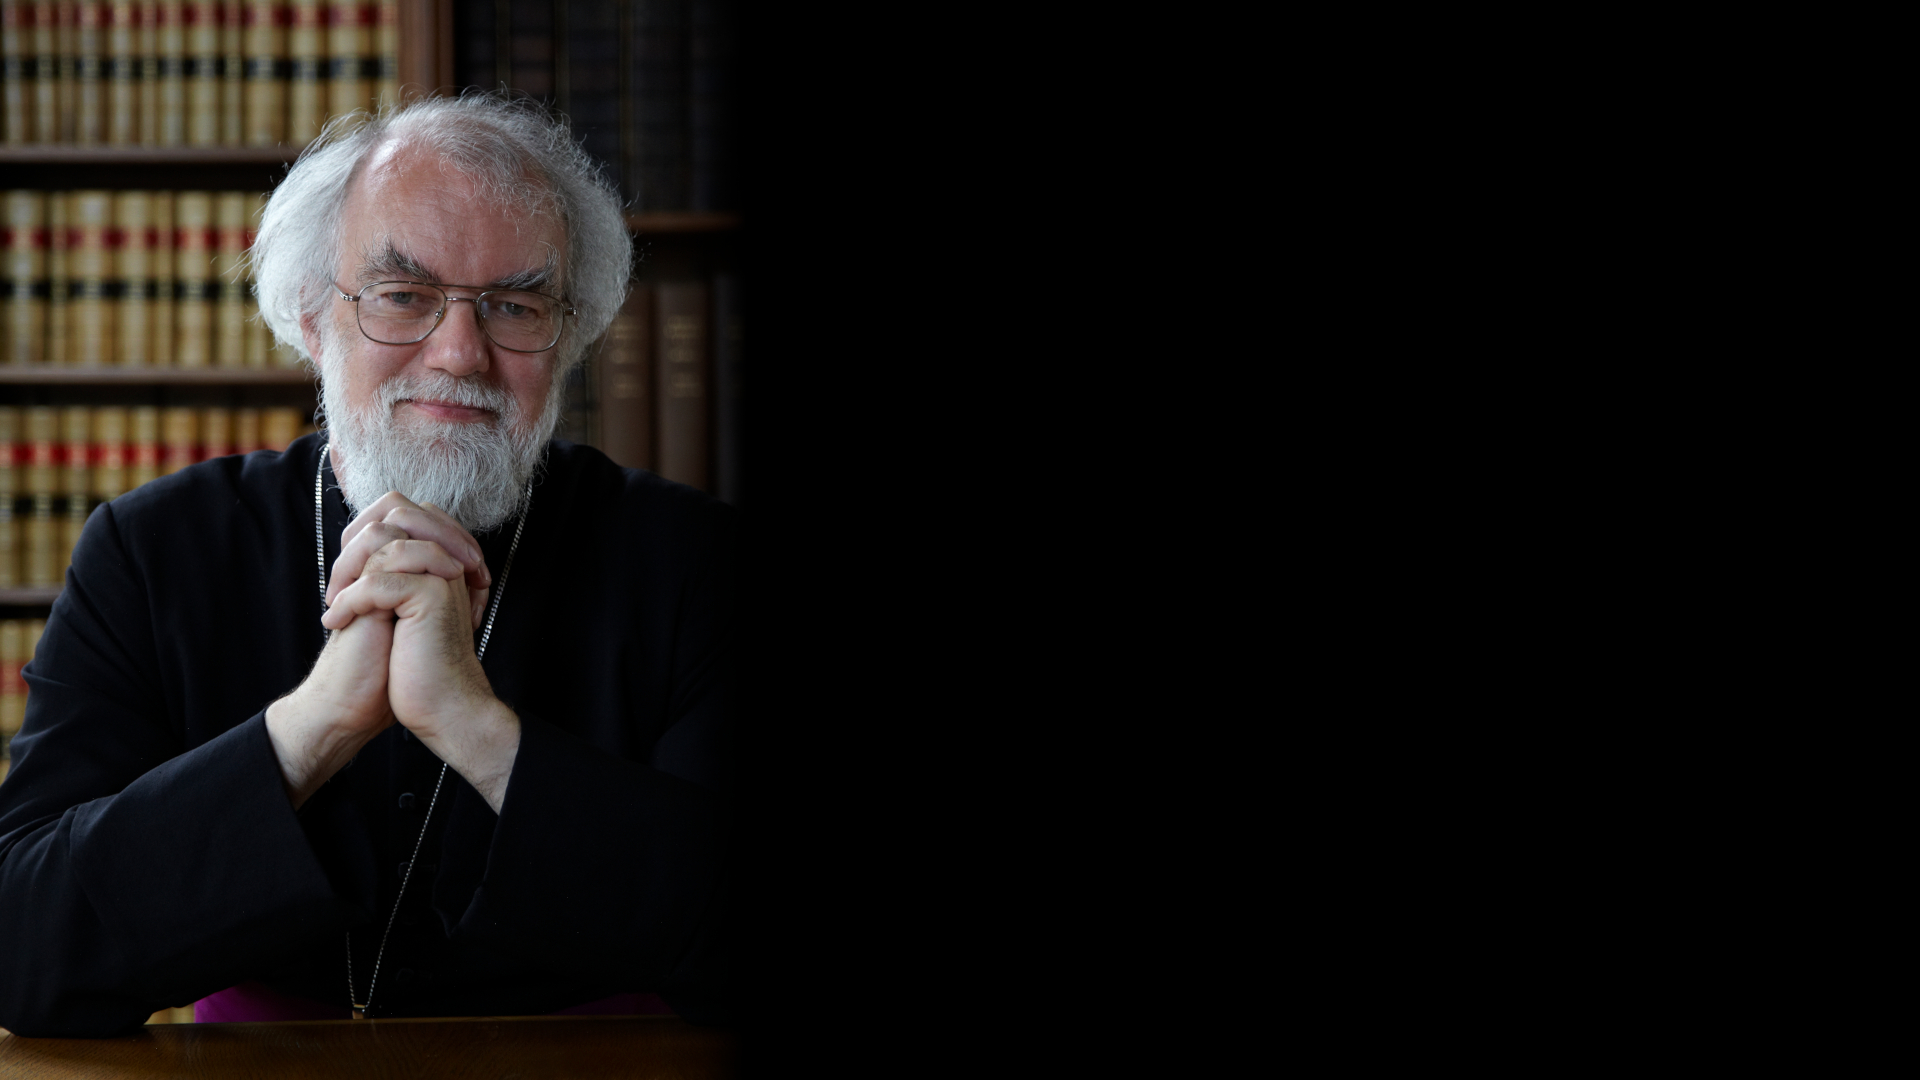 Bishop Rowan Williams - What does national identity mean these days?